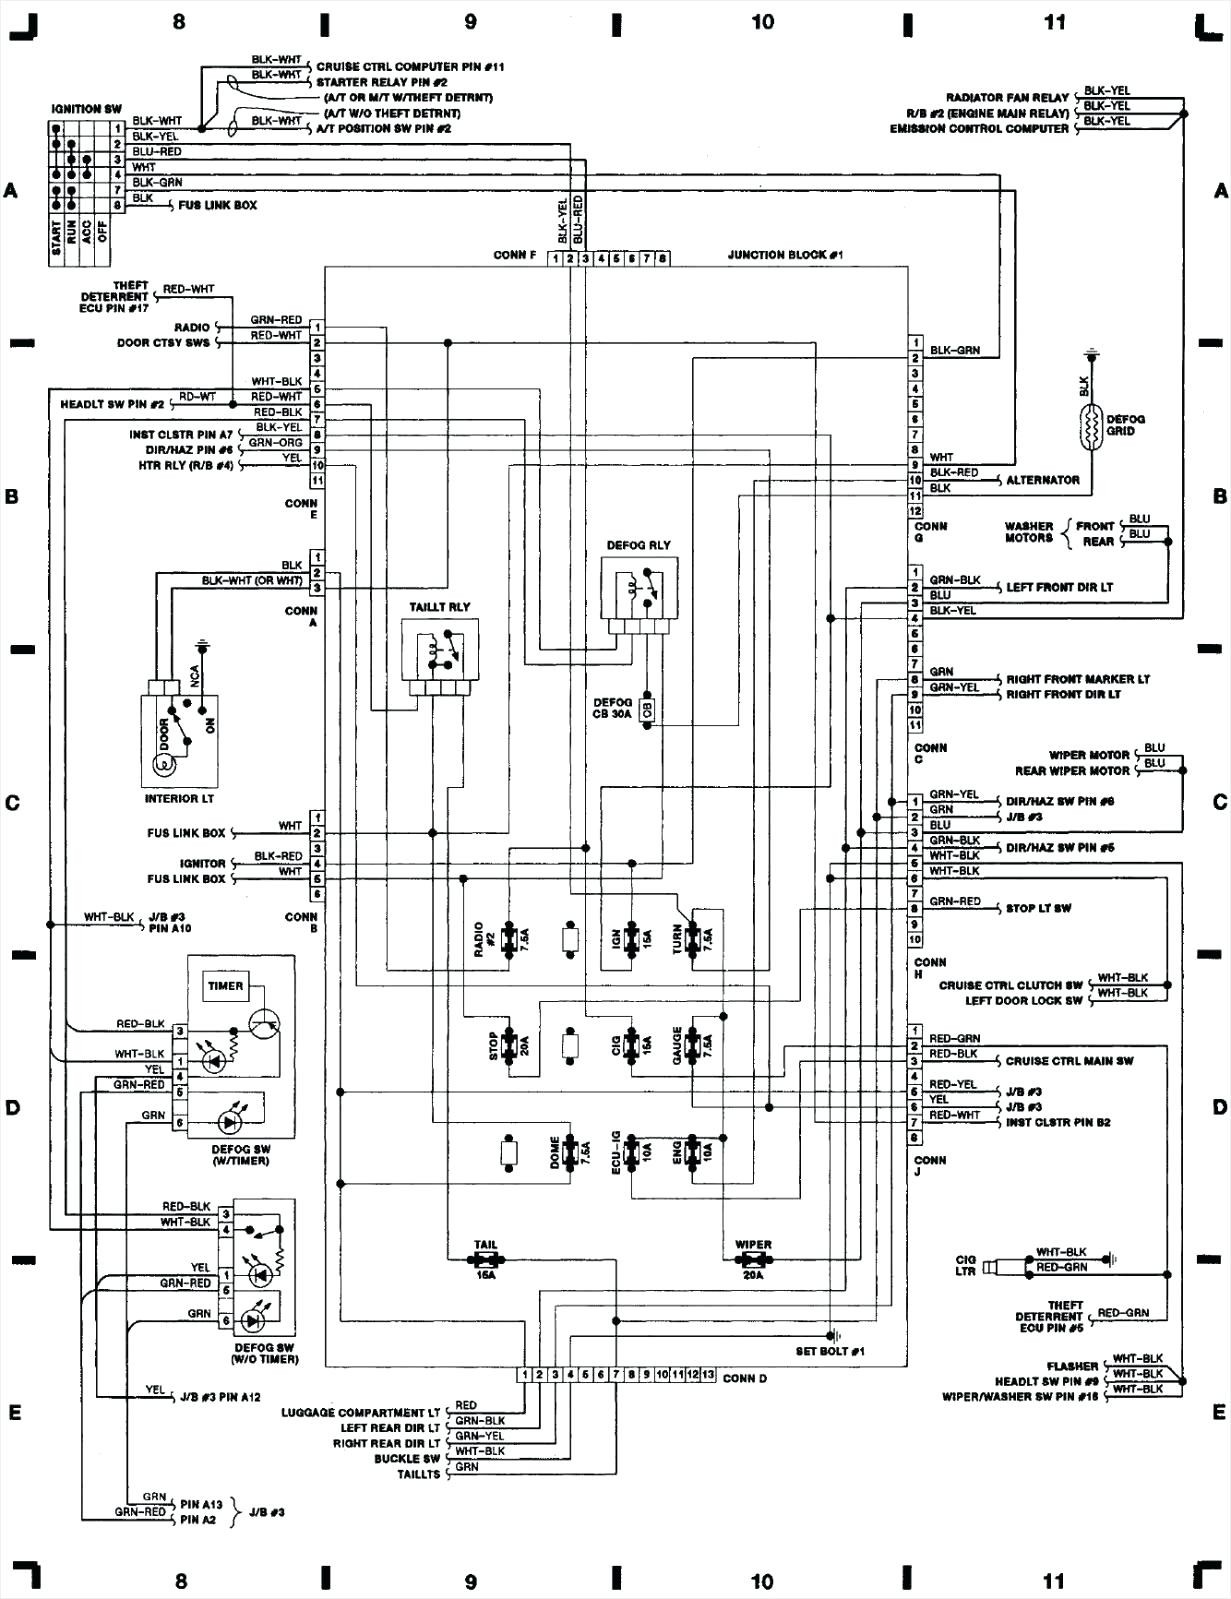 1997 Toyota Camry Alternator Wiring Diagram Solutions Cat 963 Engine Parts